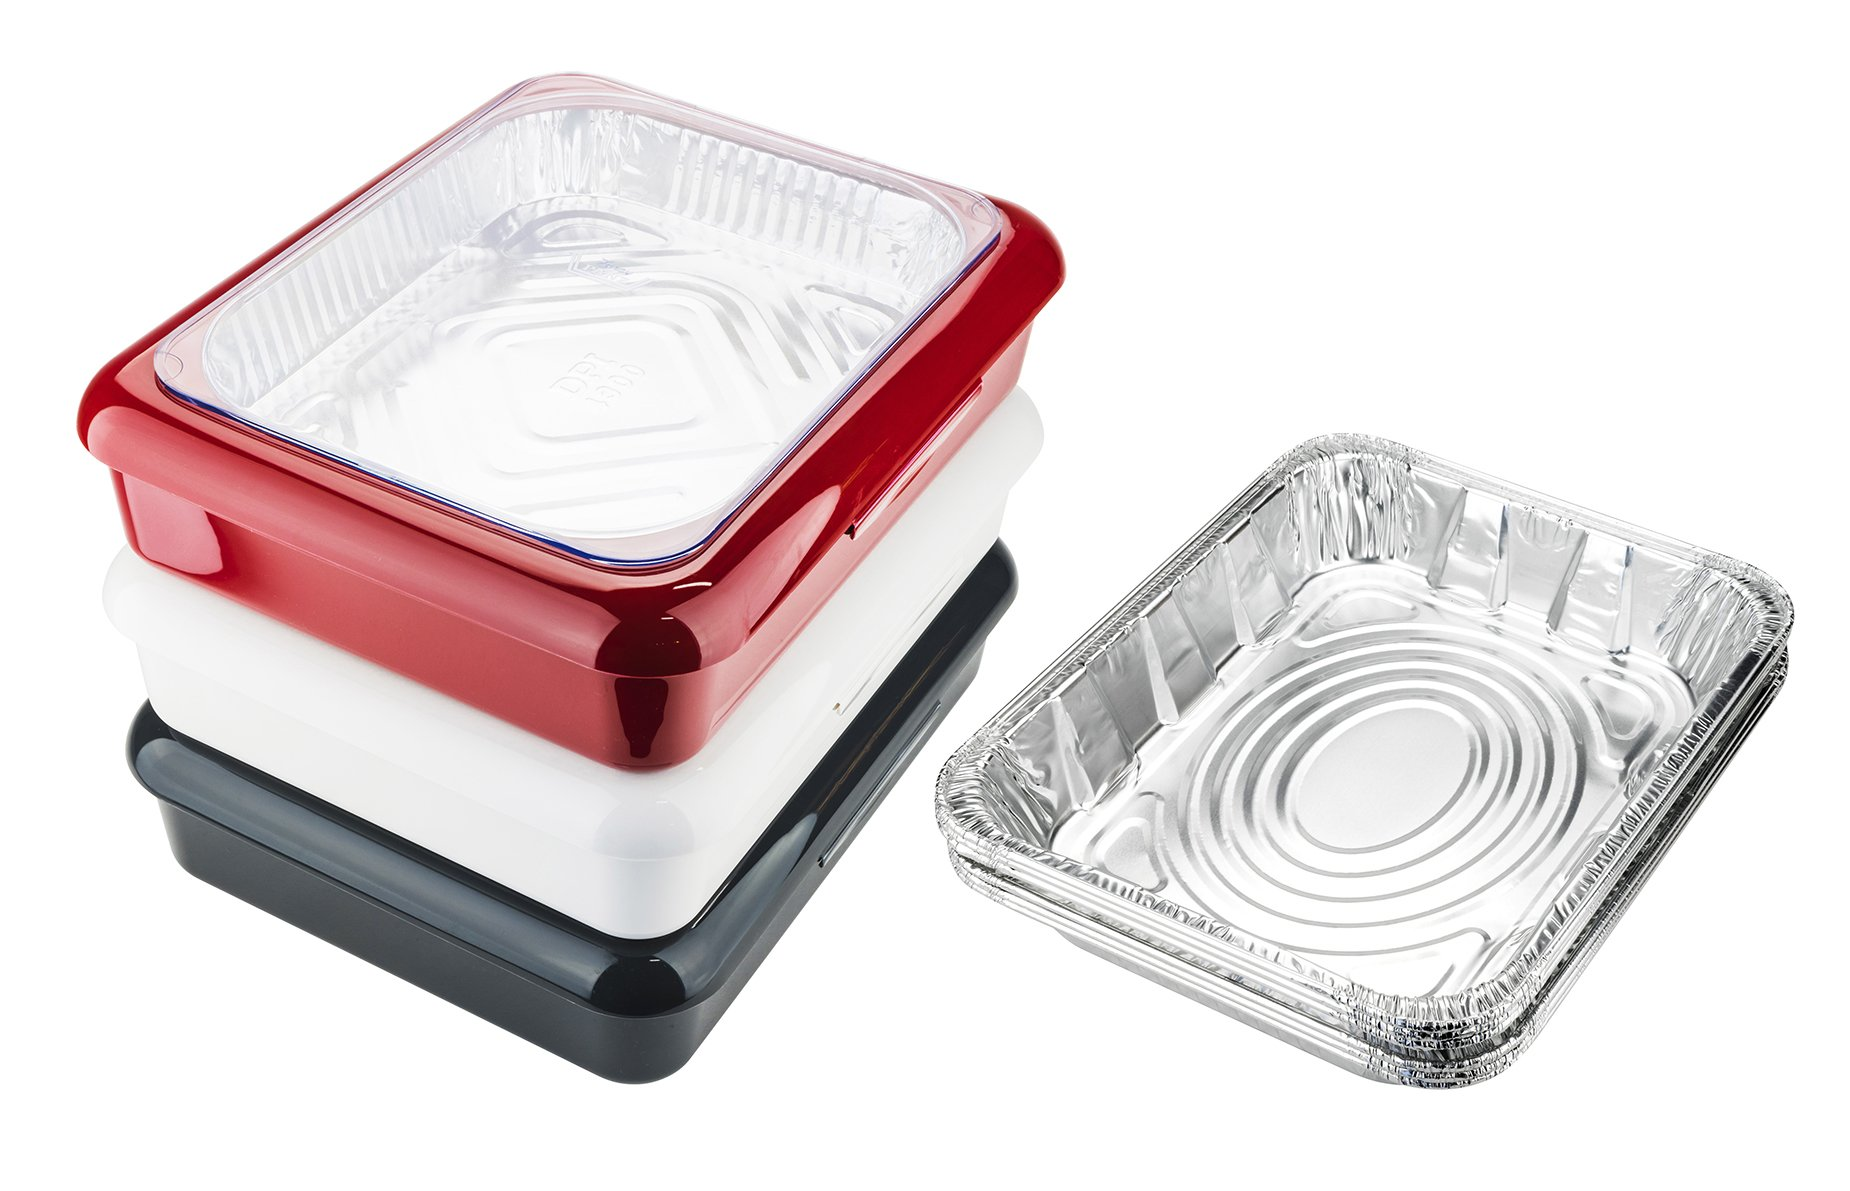 Fancy Panz FPAN3SET Portable Casserole Serveware 3-Piece Set, Dish Pan with Cover for Indoor and Outdoor Use; Red, White and Charcoal Color (Bonus 3 Foil Pans Included)